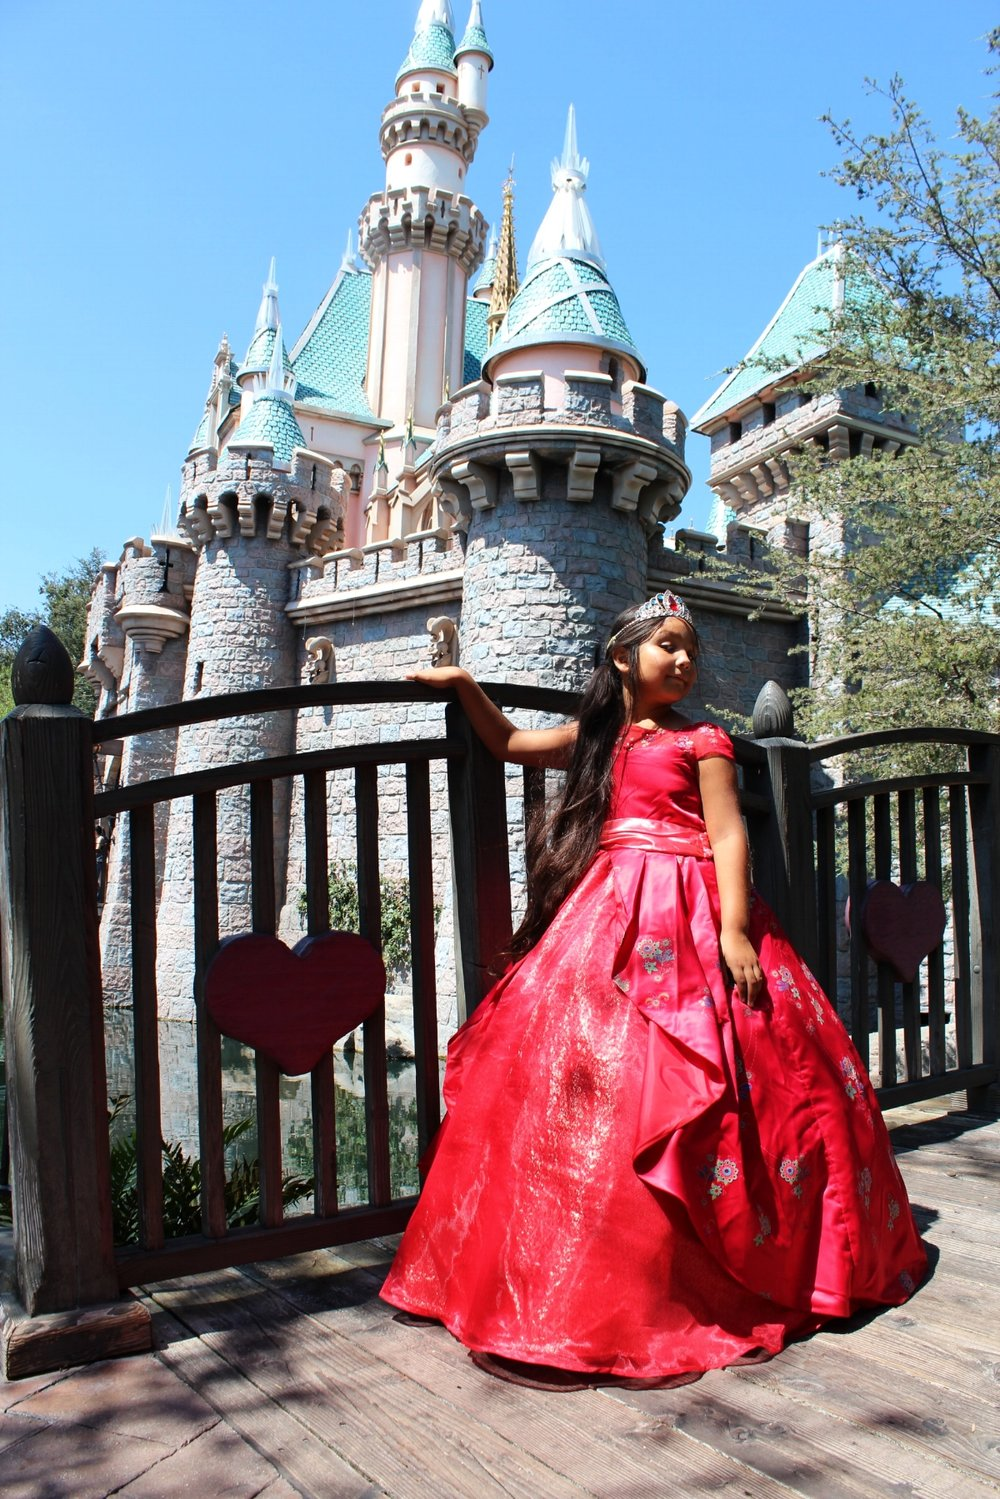 She looks like she is ready to take over the castle with that expression. The birthday girl at her happy place, Disneyland. She fits in quite well wouldn't you say?